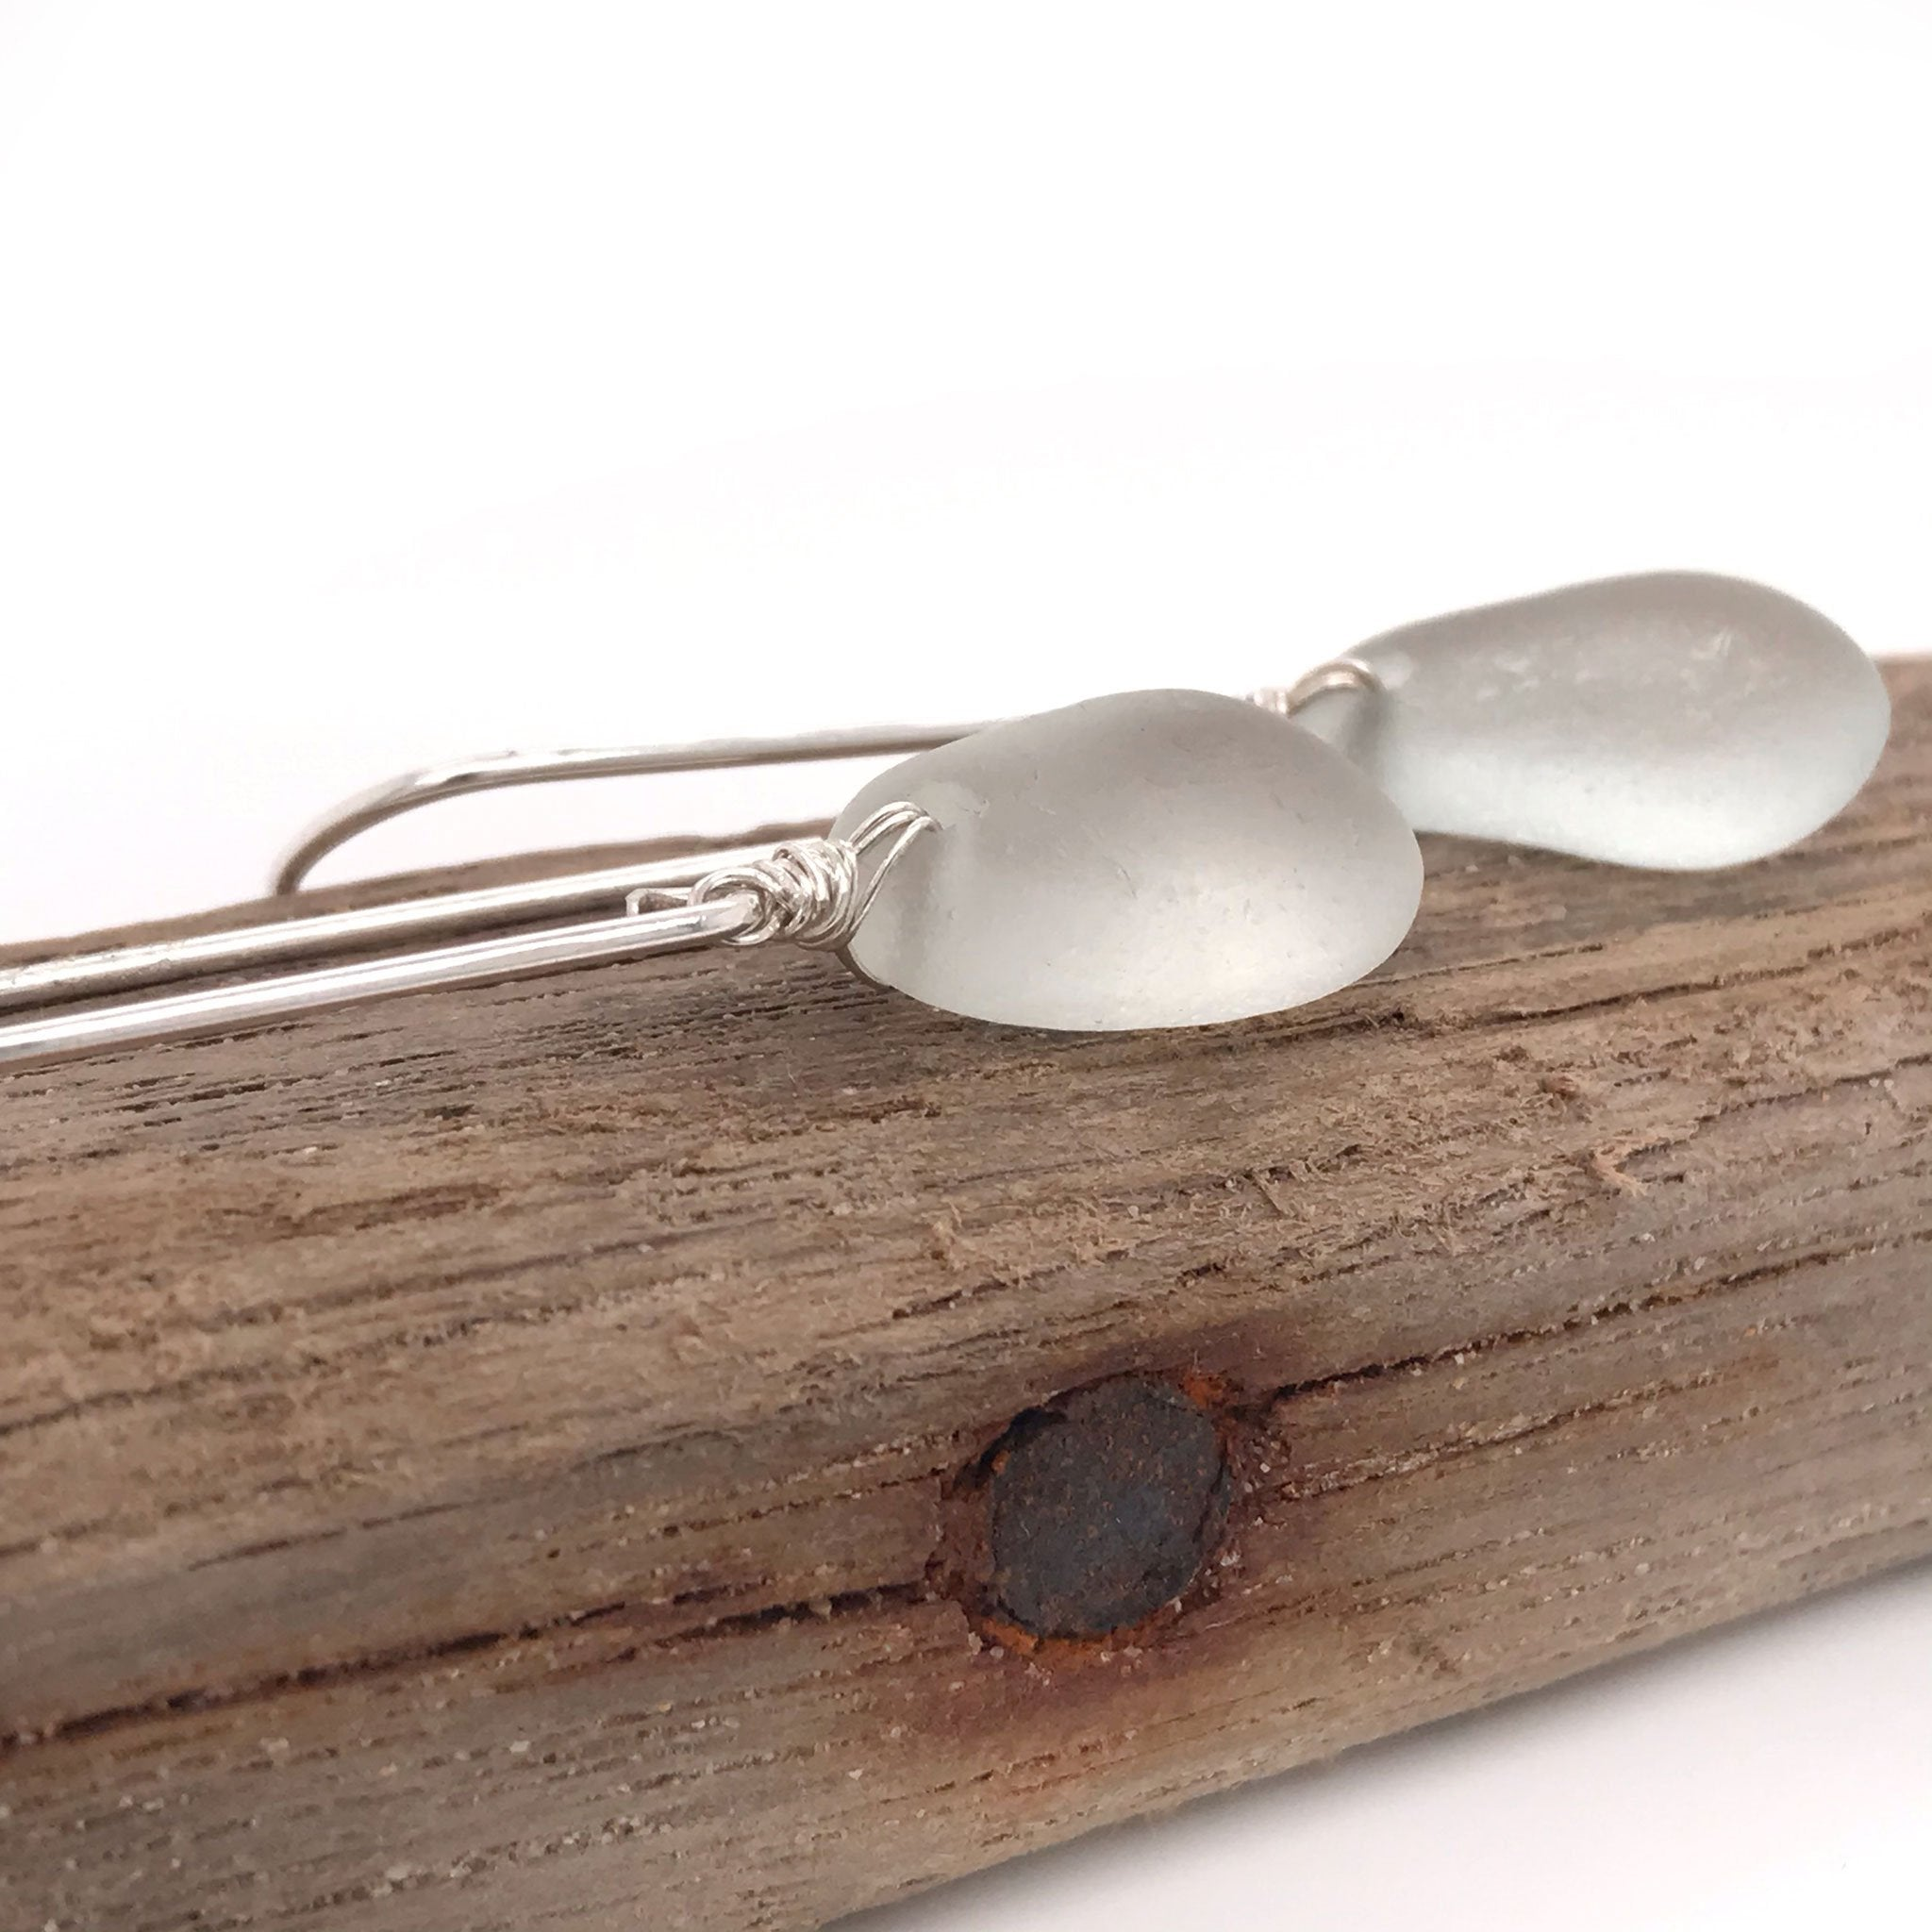 clear seaglass dangly earrings sterling silver Kriket Broadhurst jewellery